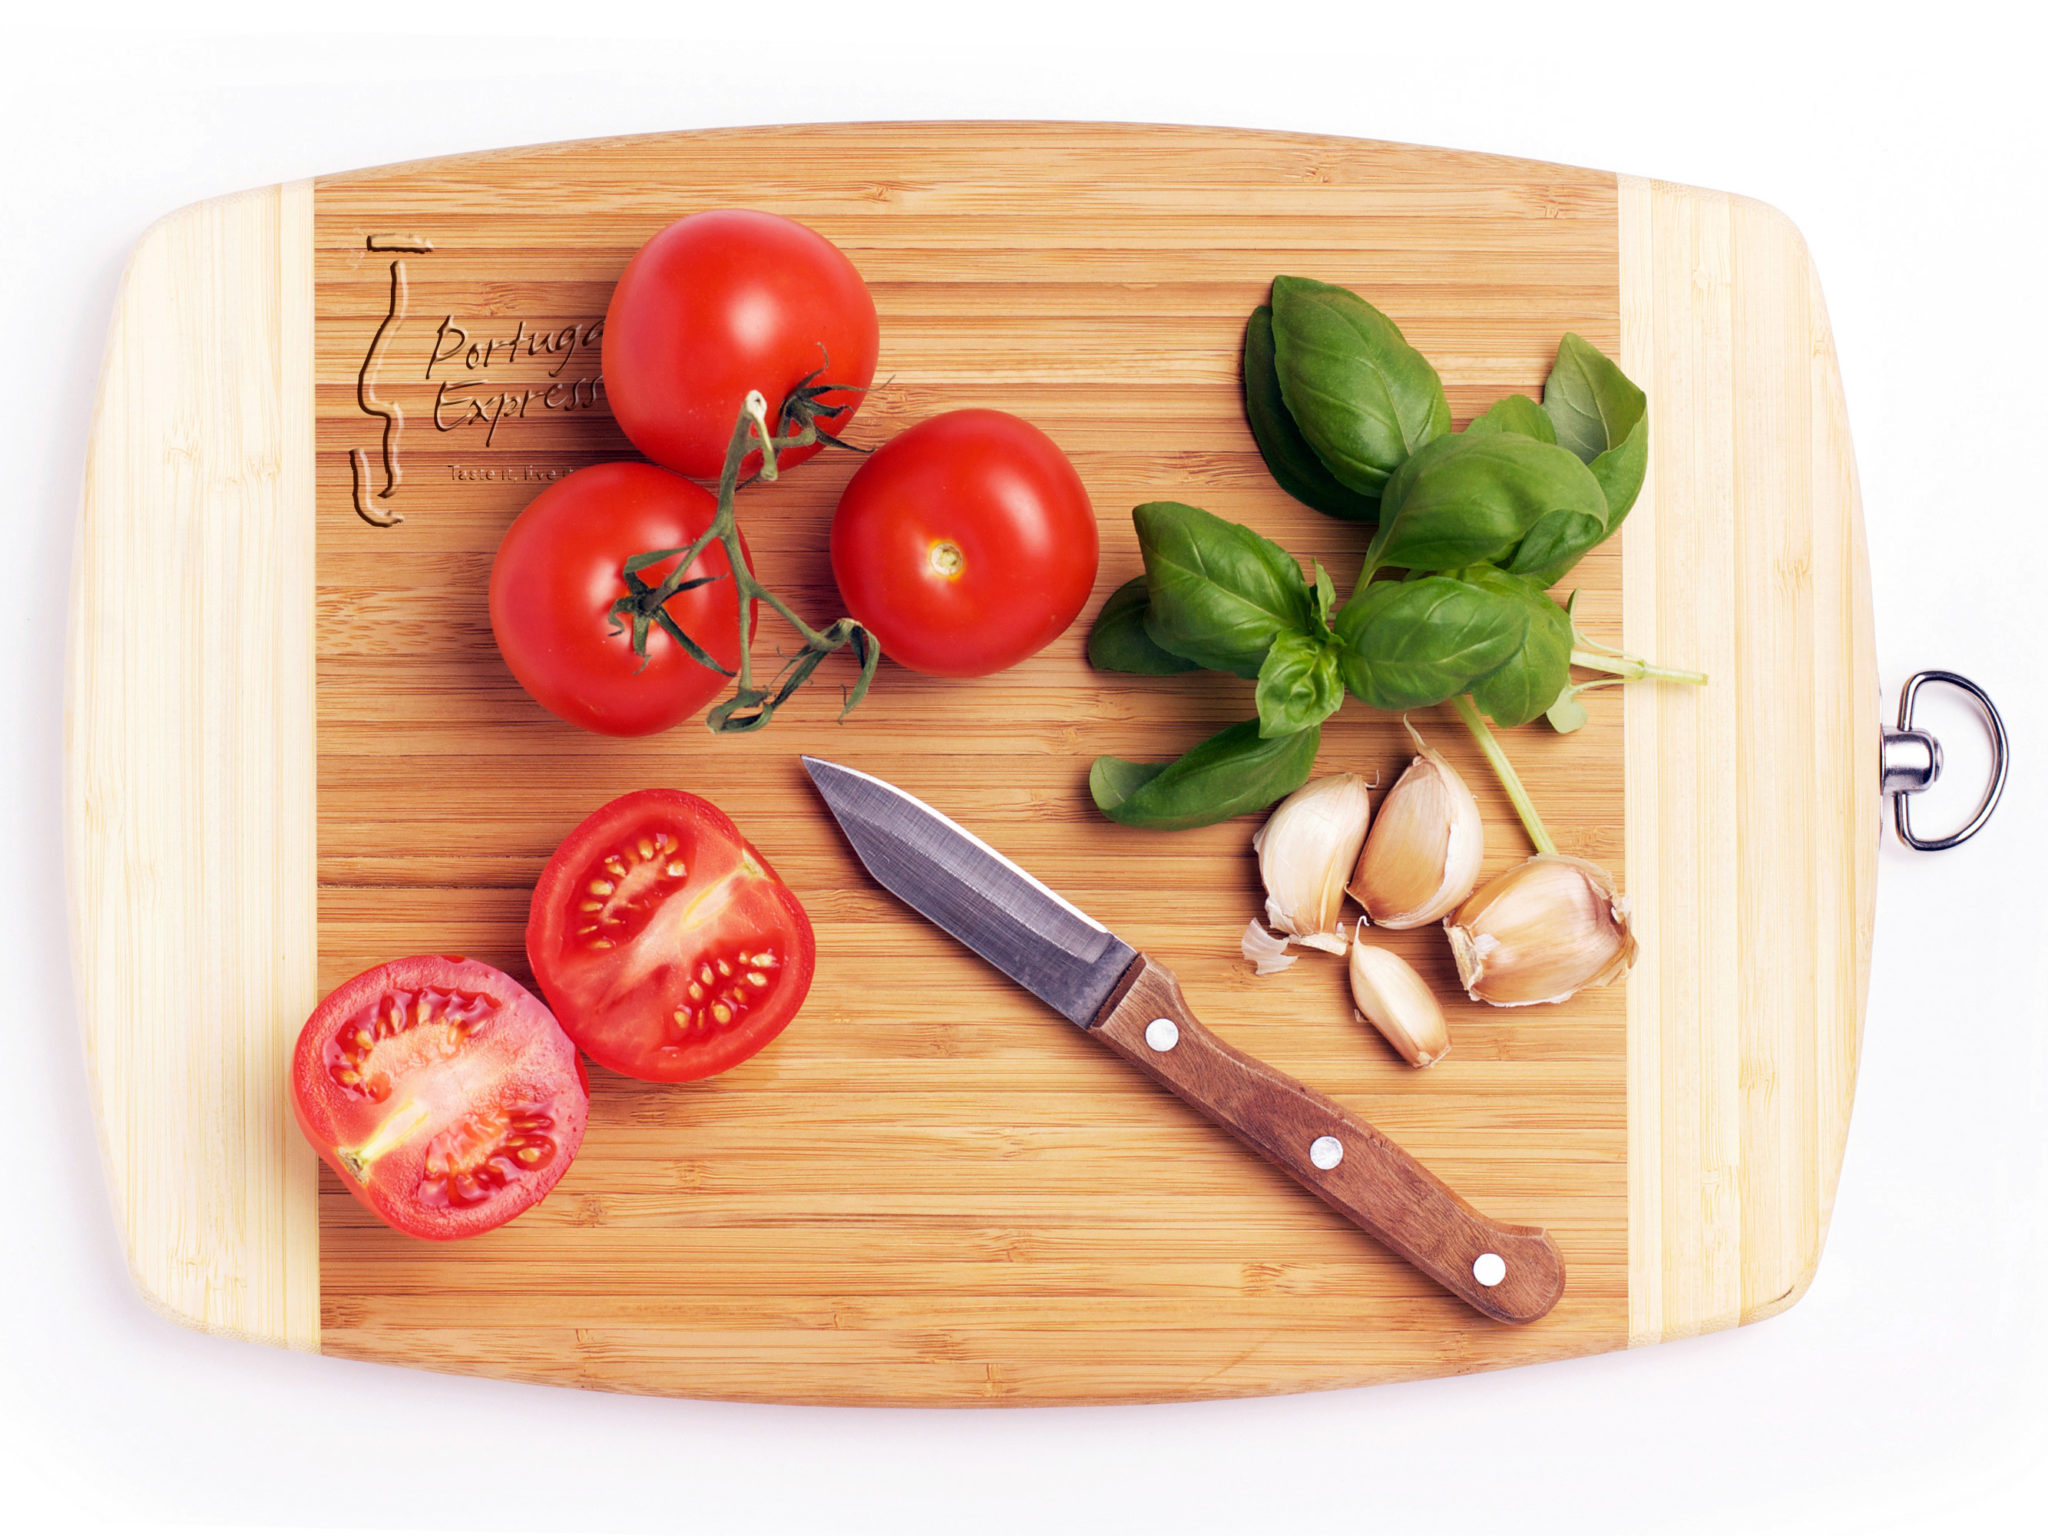 6 Cutting-Board-Mock-Up